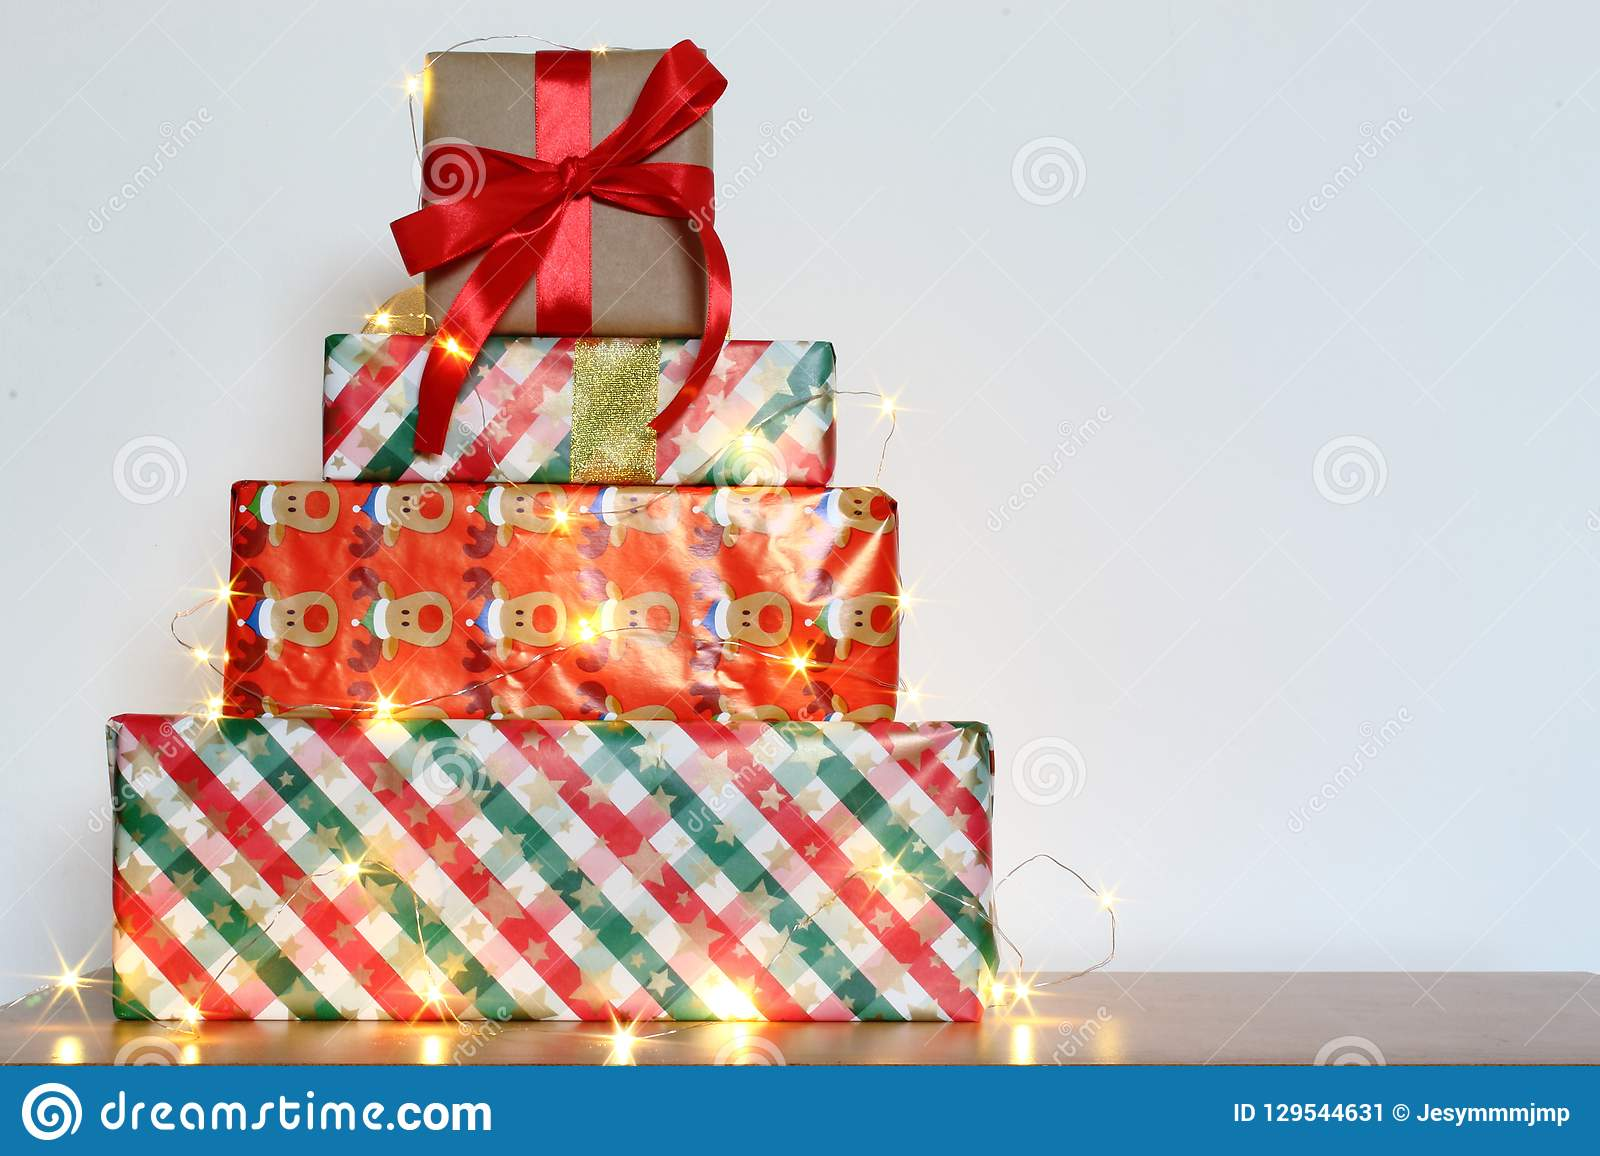 Big Pile Of Colorful Wrapped Gift Boxes Isolated On Wood Table And